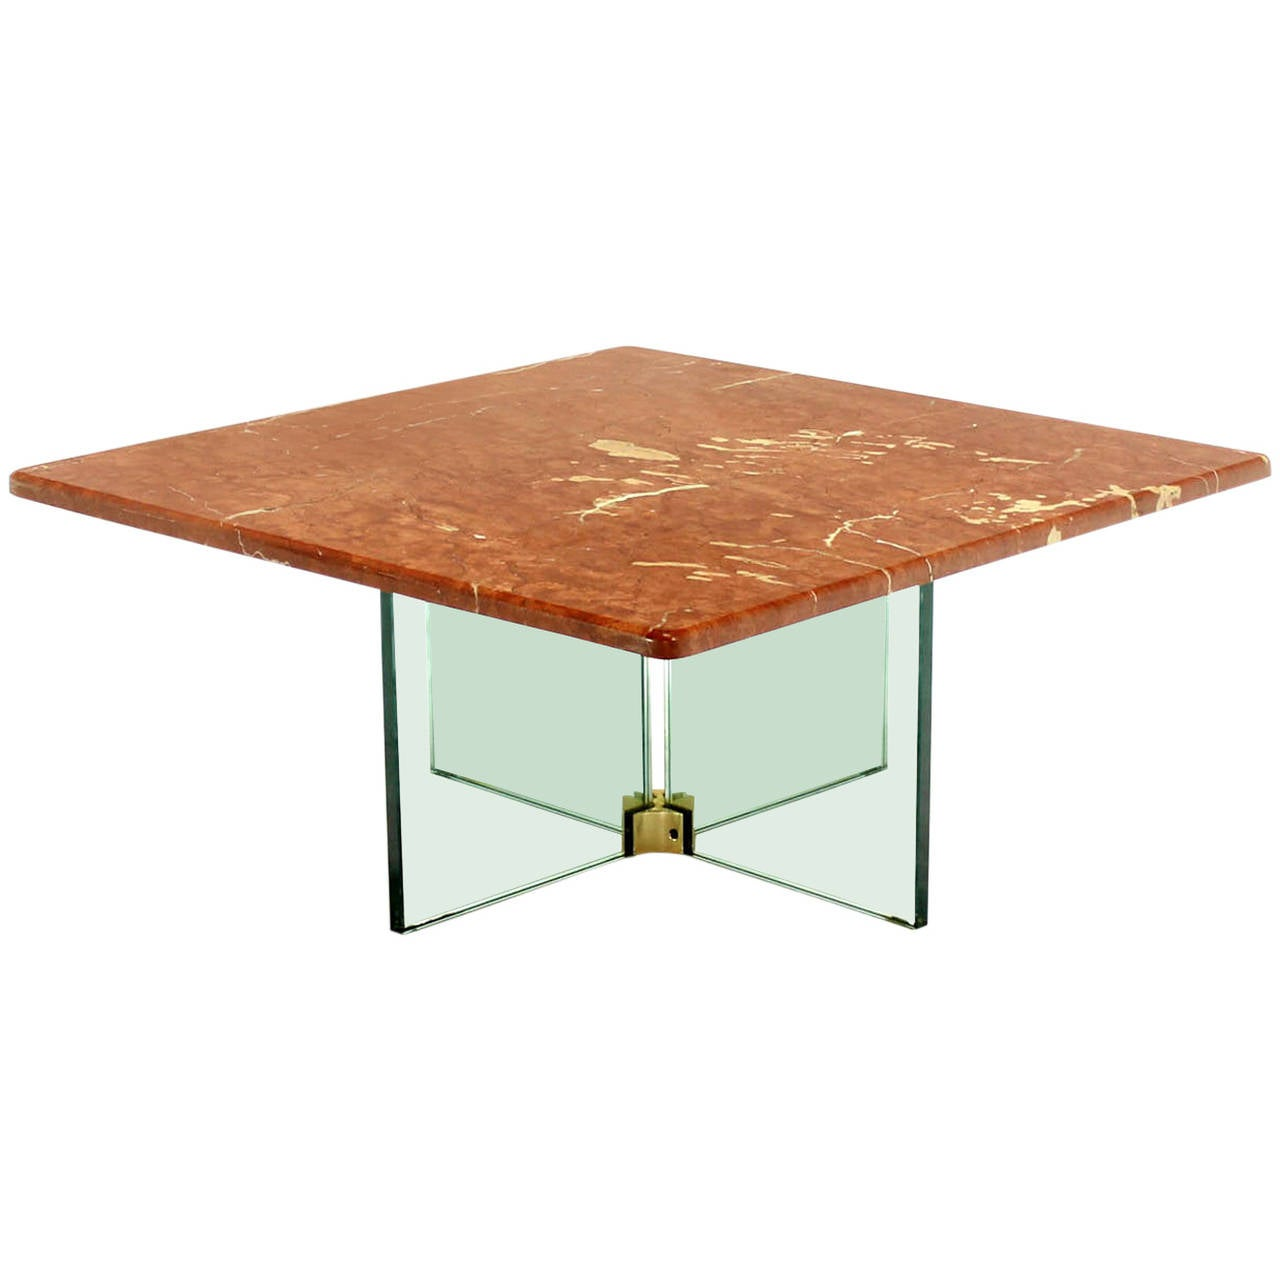 Glass x cross base coffee table w marble top for sale at 1stdibs Bases for coffee tables